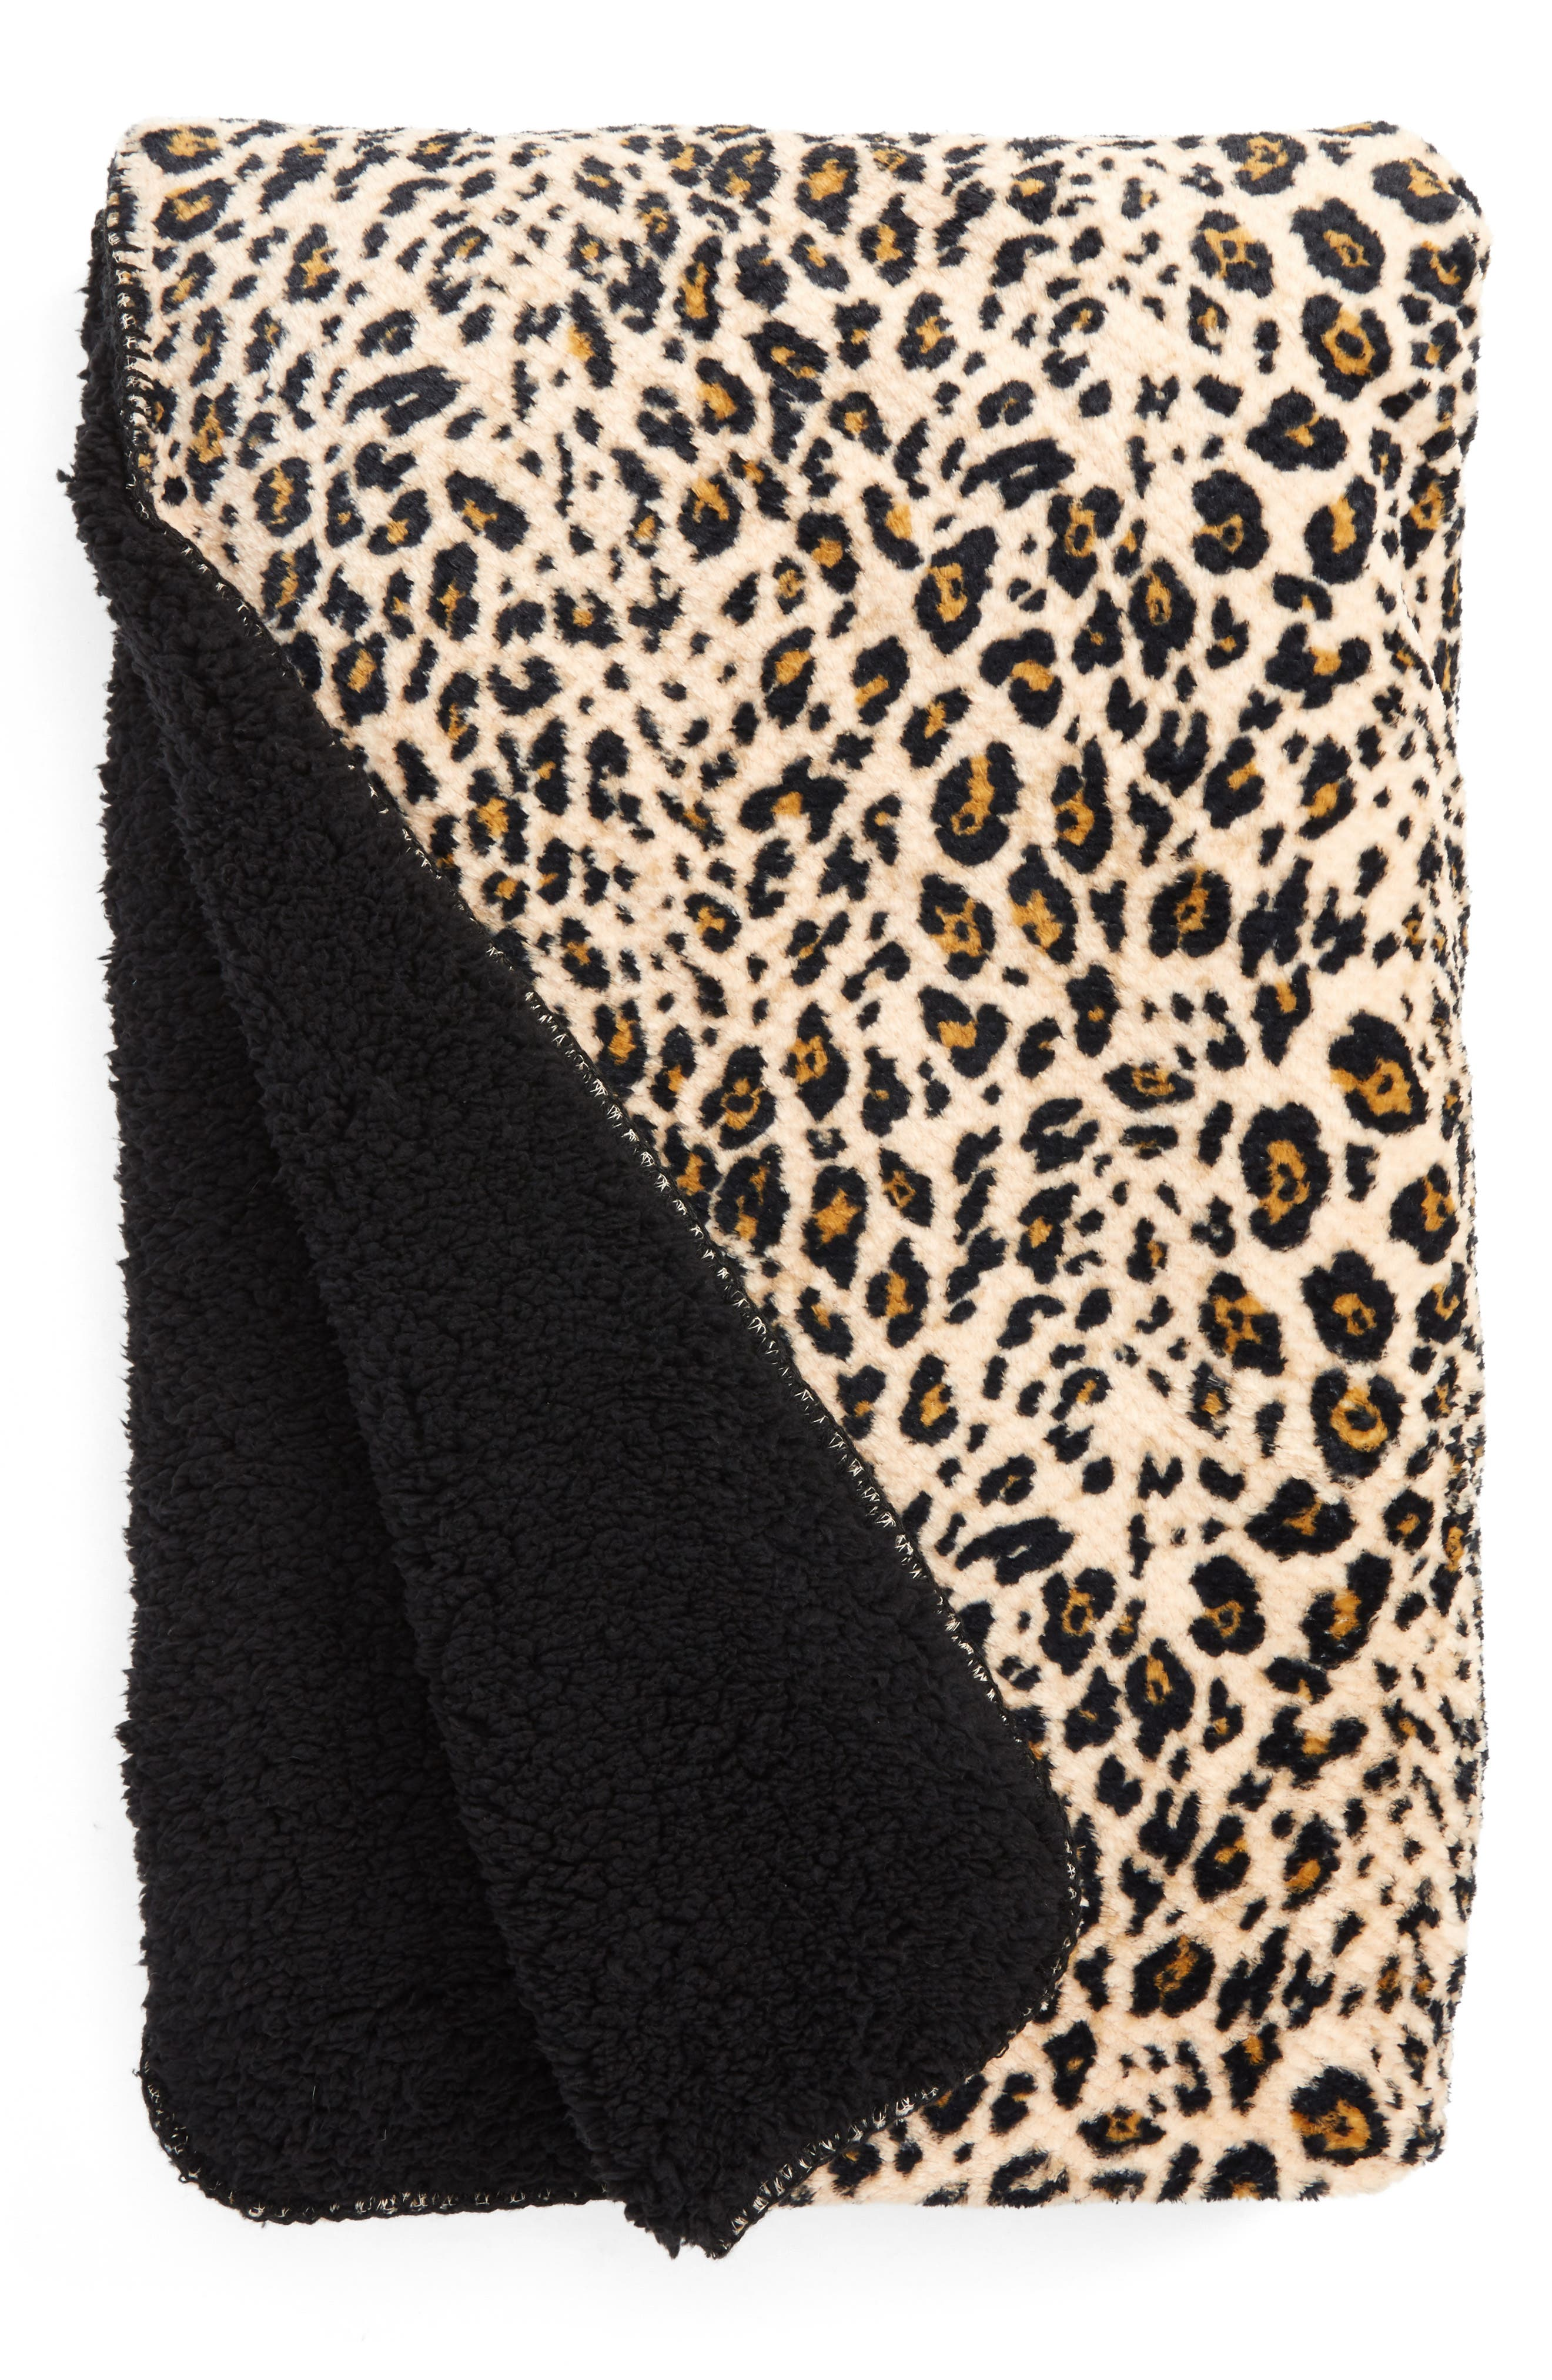 Leopard Print Faux Shearling Blanket,                             Main thumbnail 1, color,                             250